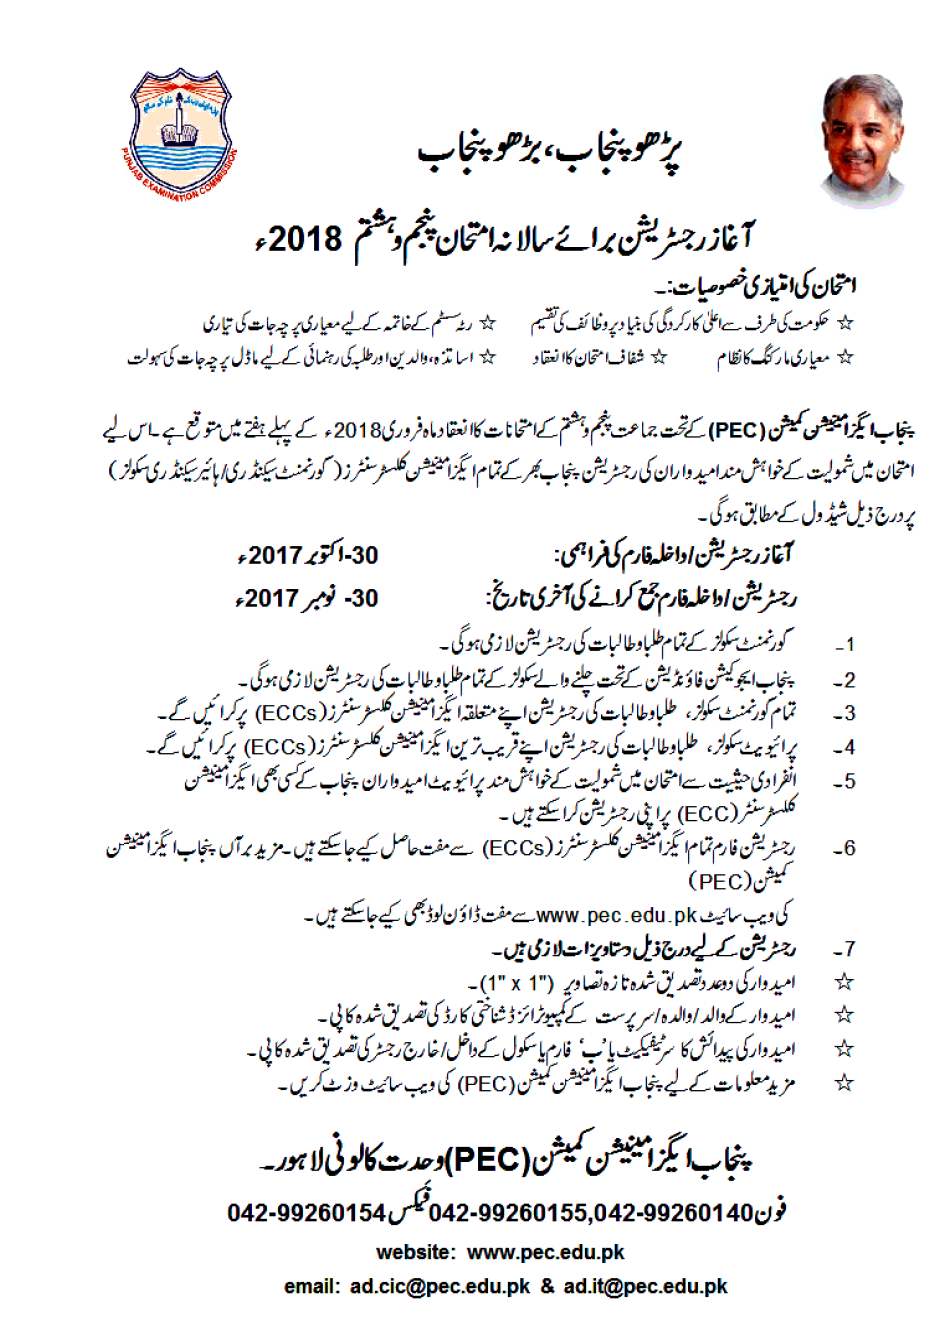 5th, 8th Class Admission Form 2018 PEC Download Documents Required